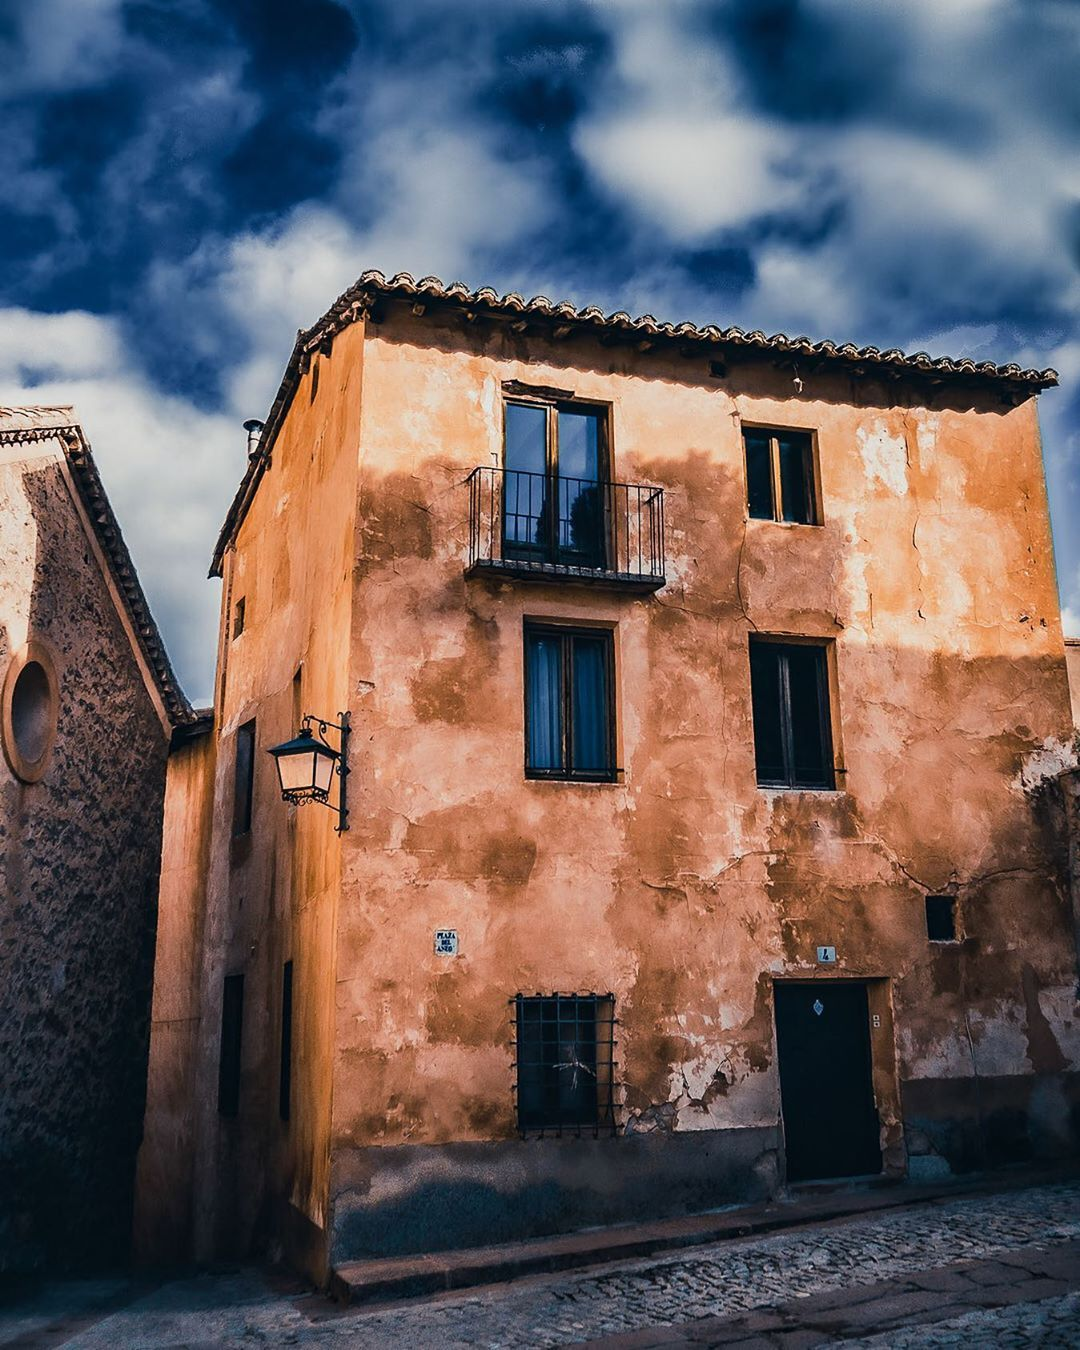 "Damian G on Instagram: ""- . . . . . . . . . . . . . . . #streetsdreamsmag #visualambassadors #heatercentral #teruel #bealpha #shotzdelight  #travelmemories…"""